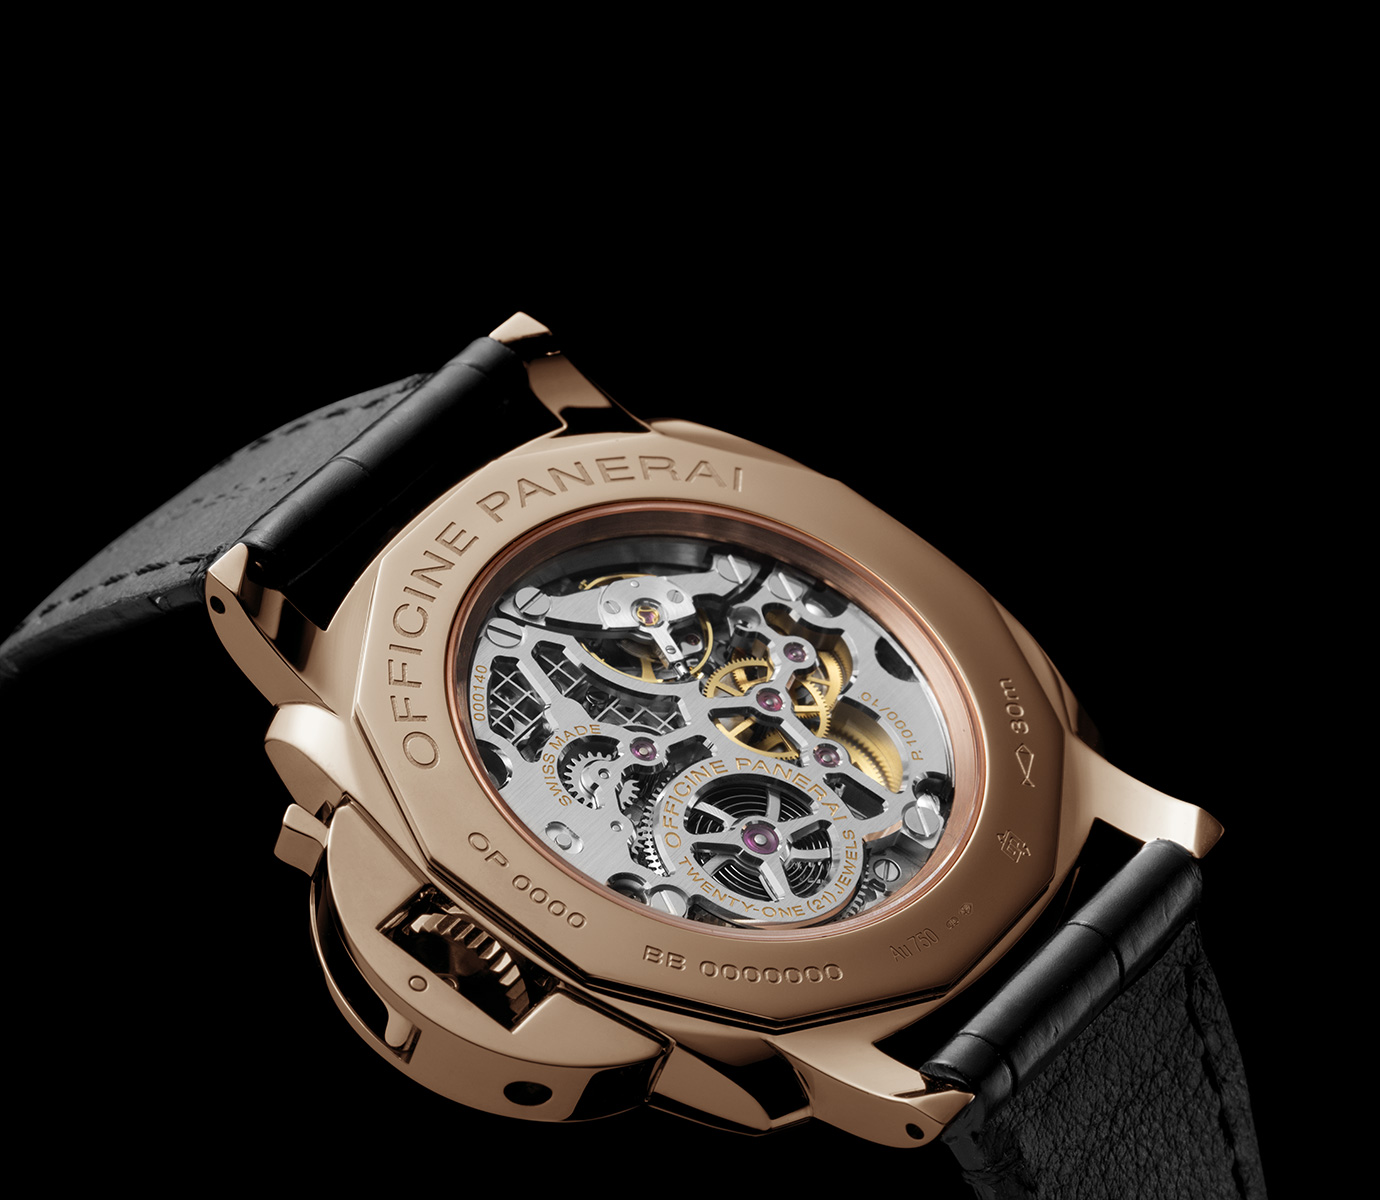 Panerai-Luminor-Due-3-Days-Oro-Rosso-42-mm-4-Horasyminutos